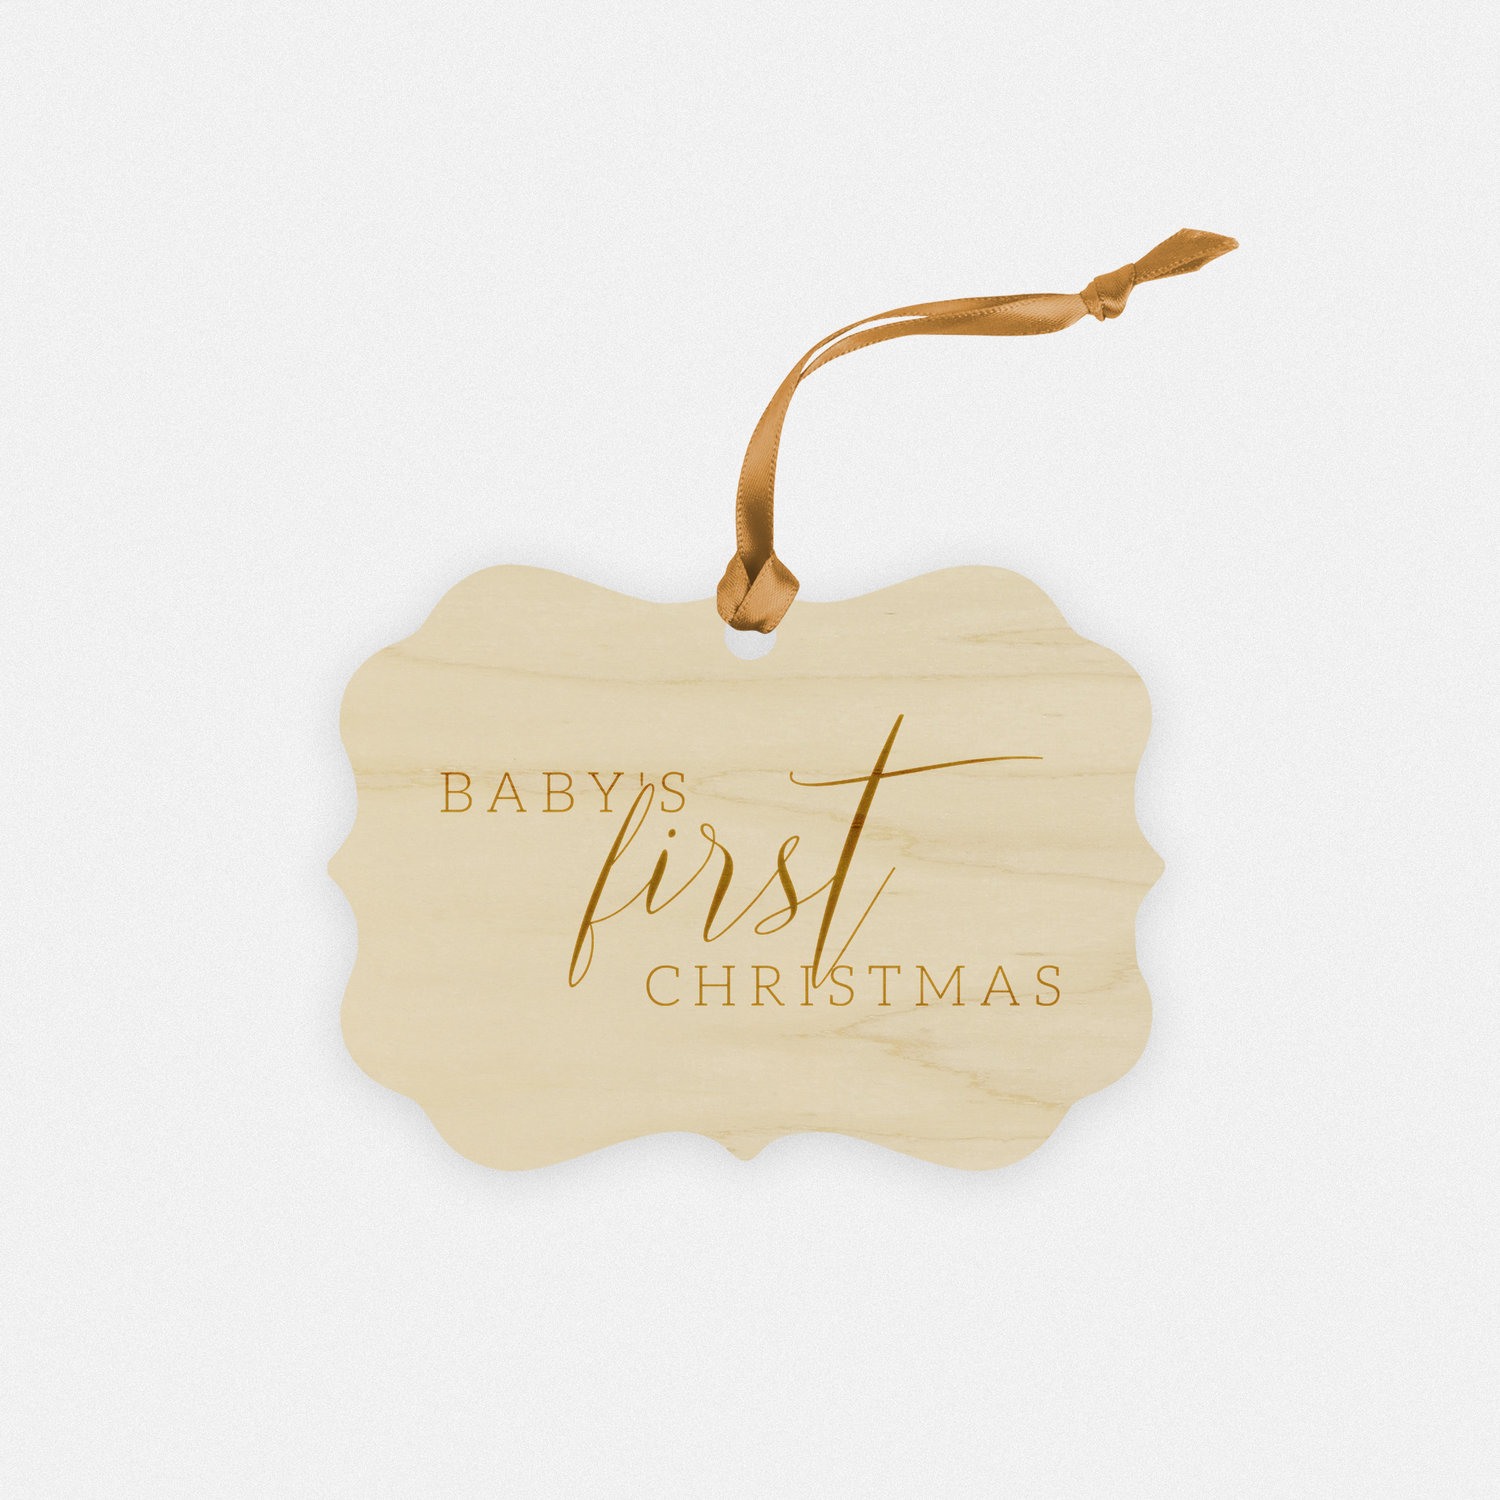 Baby's First Christmas Engraved Wood Ornament